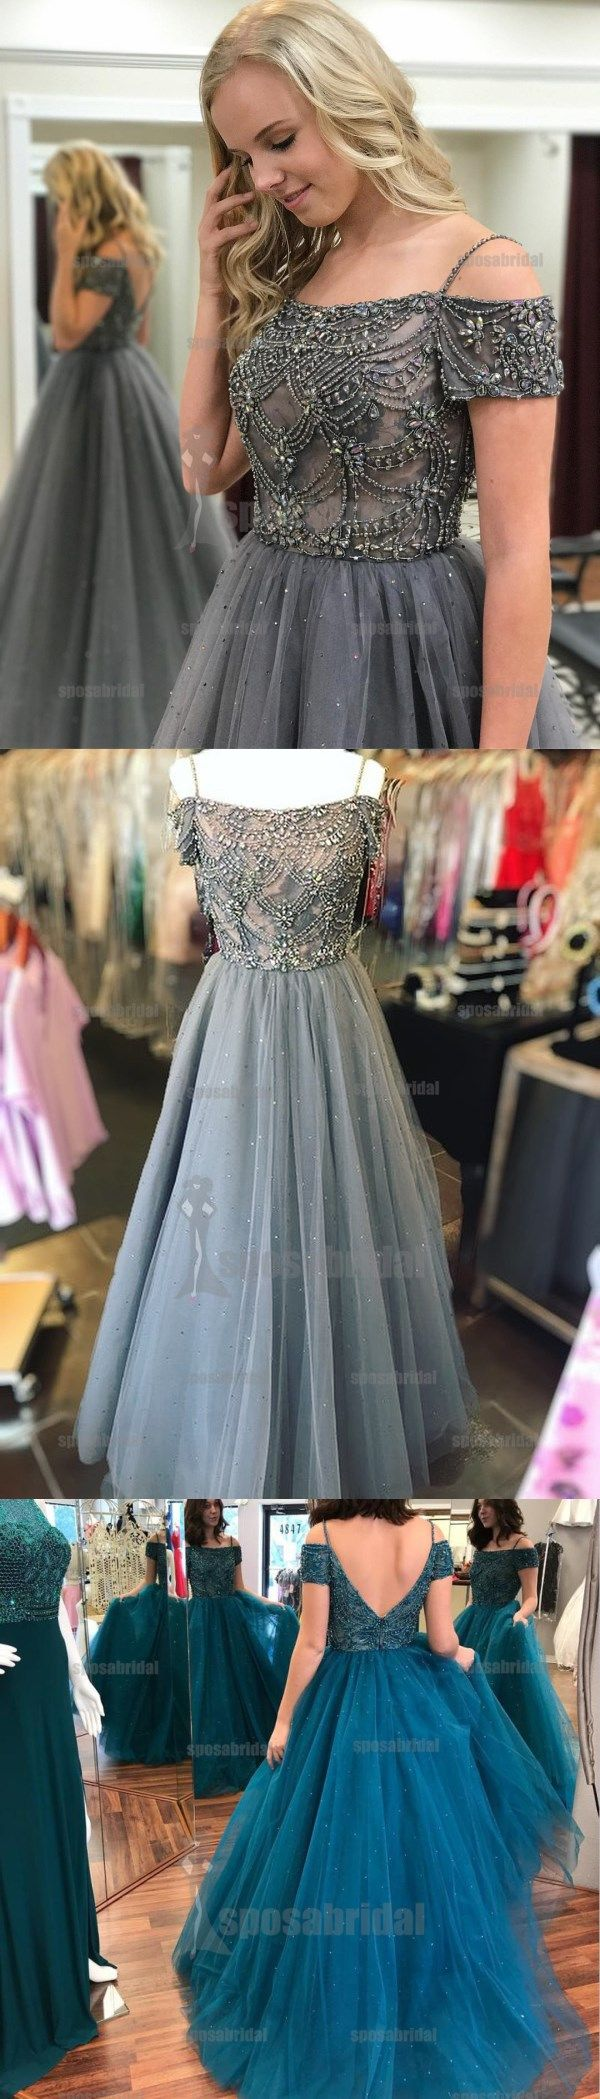 Off shoulder grey v back beaded tulle sparkly gorgeous party prom